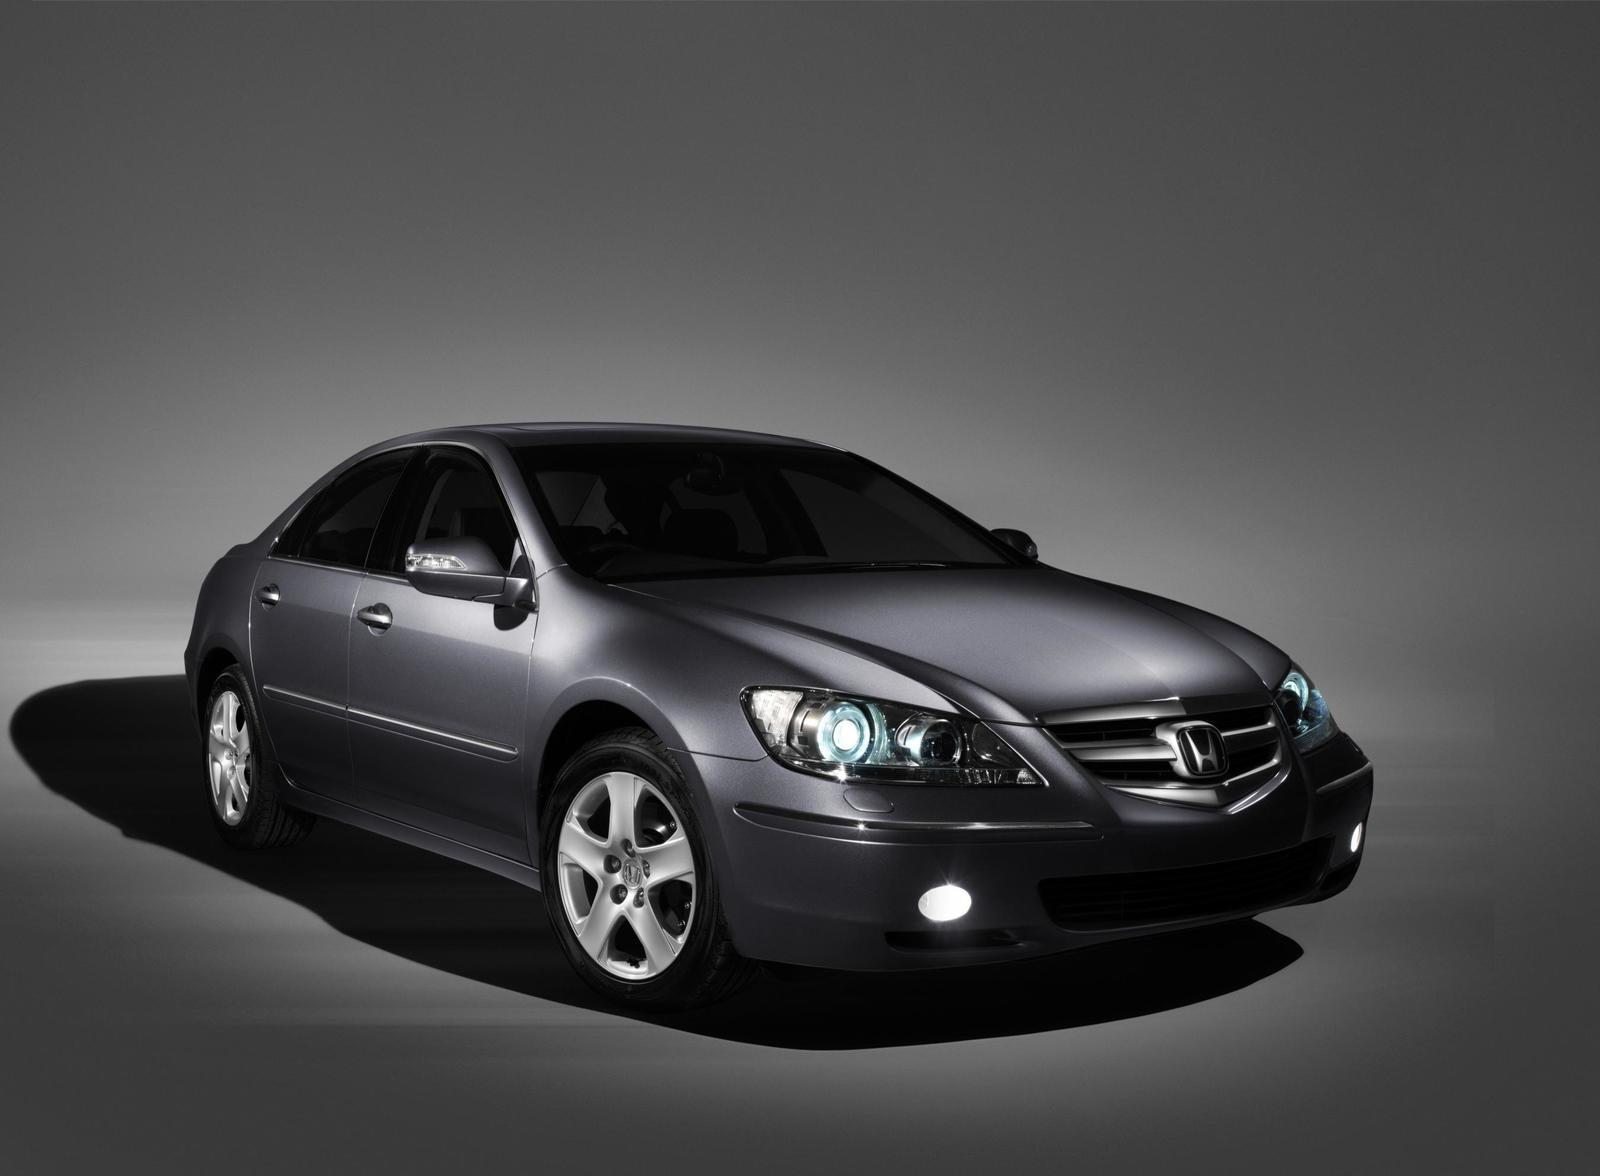 2007 honda legend acura rl picture 151032 car review top speed. Black Bedroom Furniture Sets. Home Design Ideas